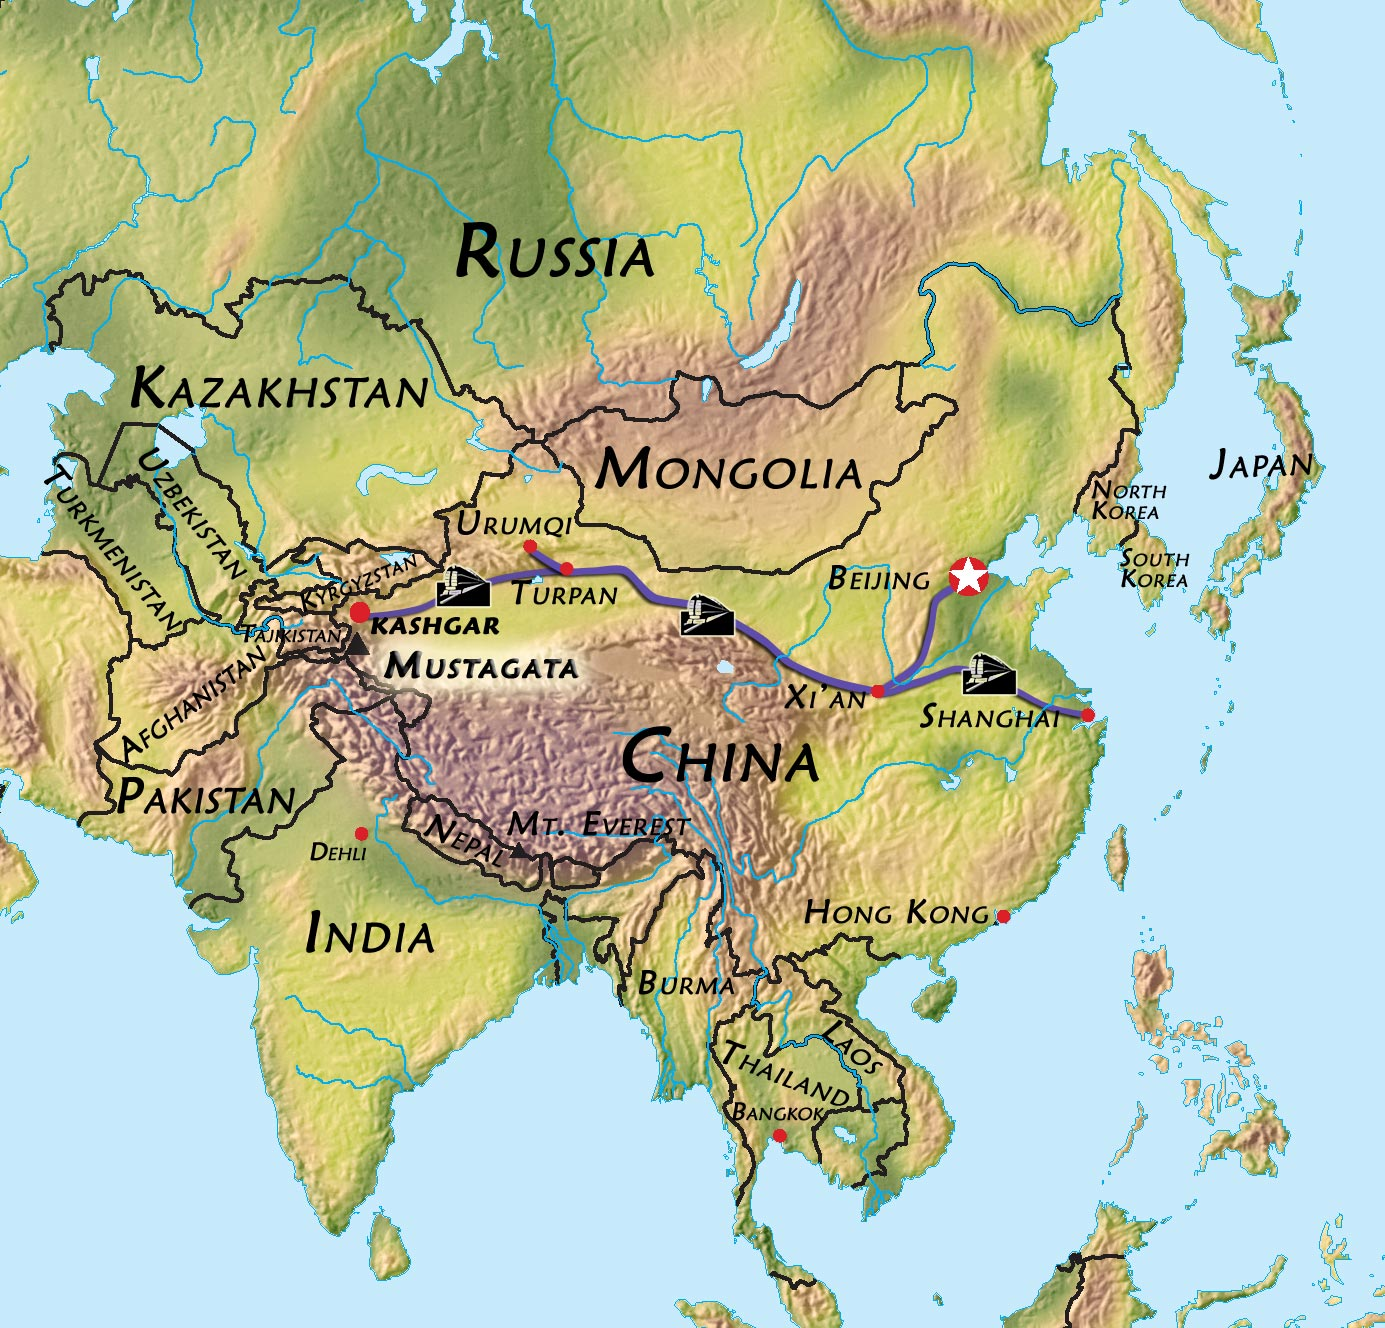 Silk route center of the world olyeats travel2 gumiabroncs Gallery